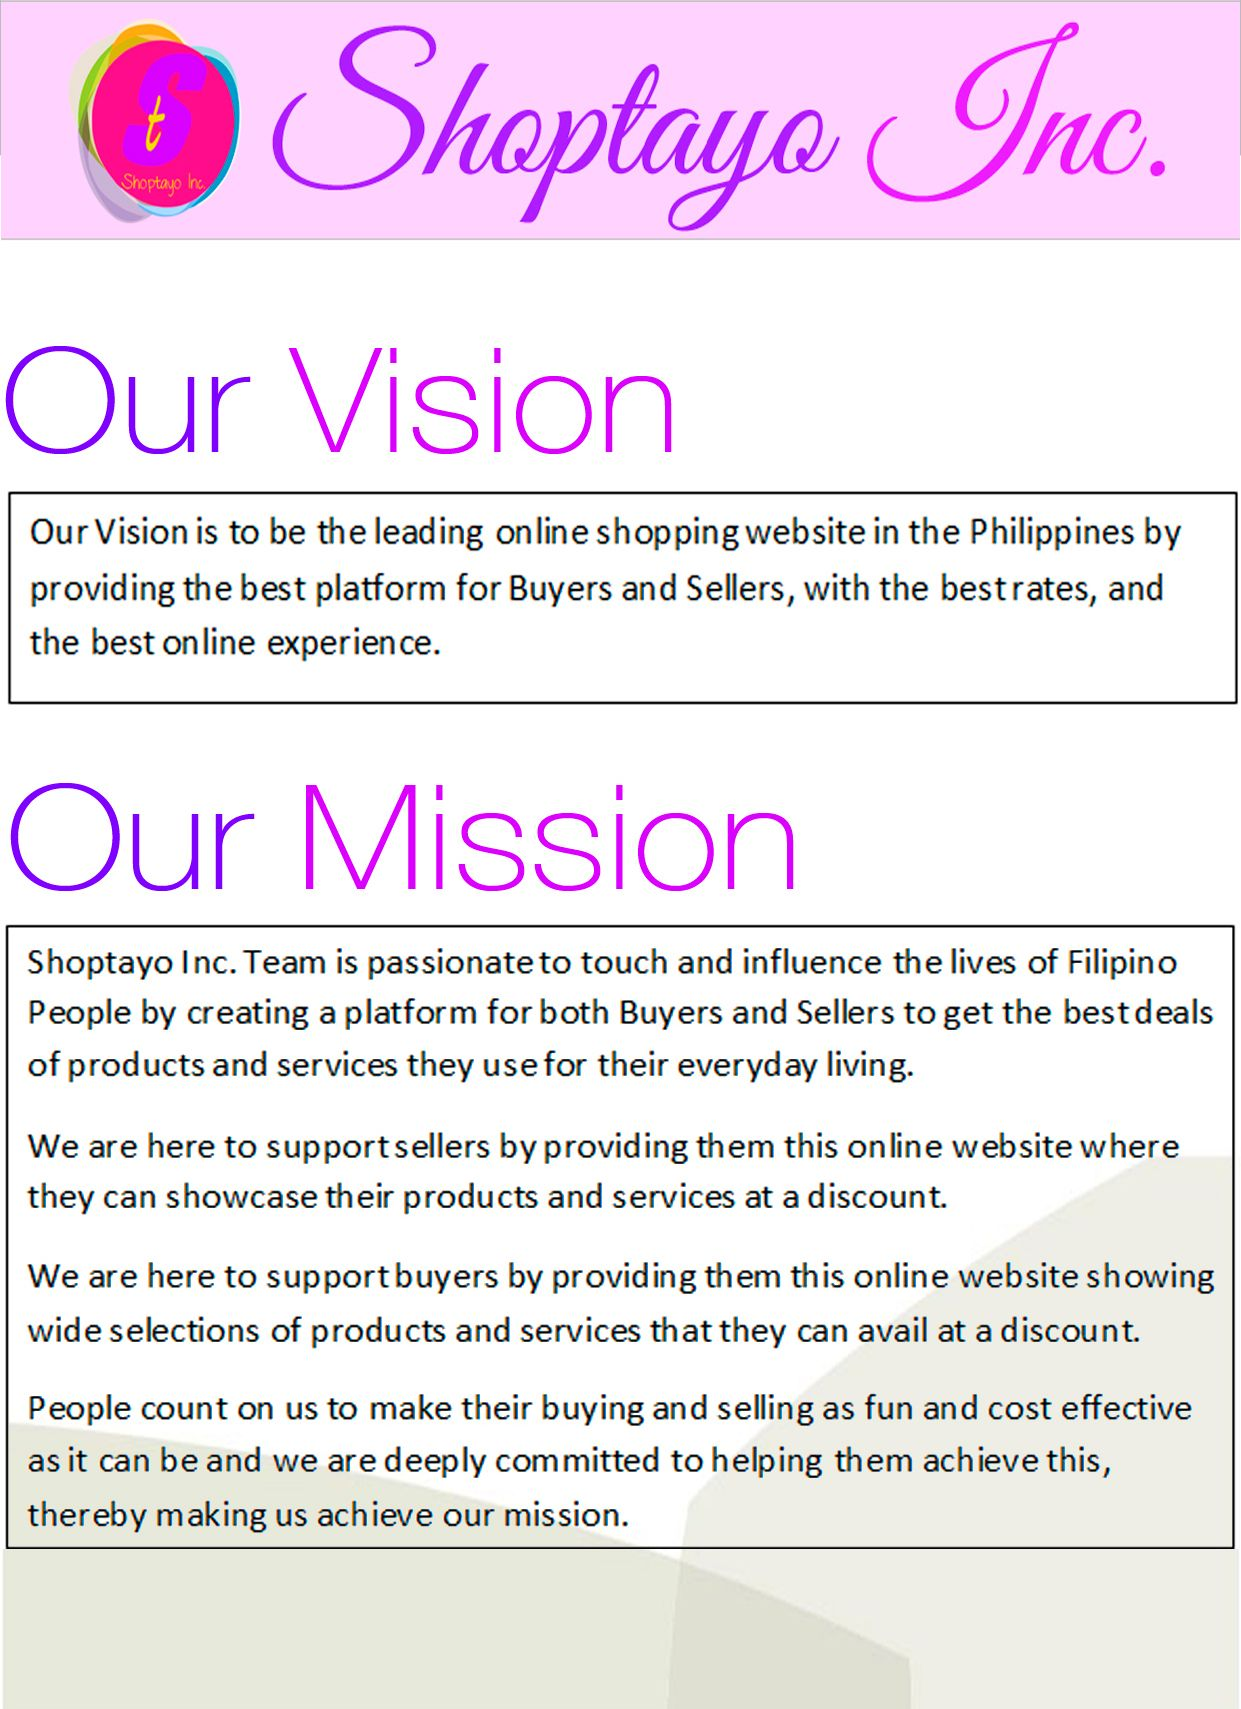 e3676317de78 Shoptayo store offers the best online shopping deals in the Philippines for  beauty products